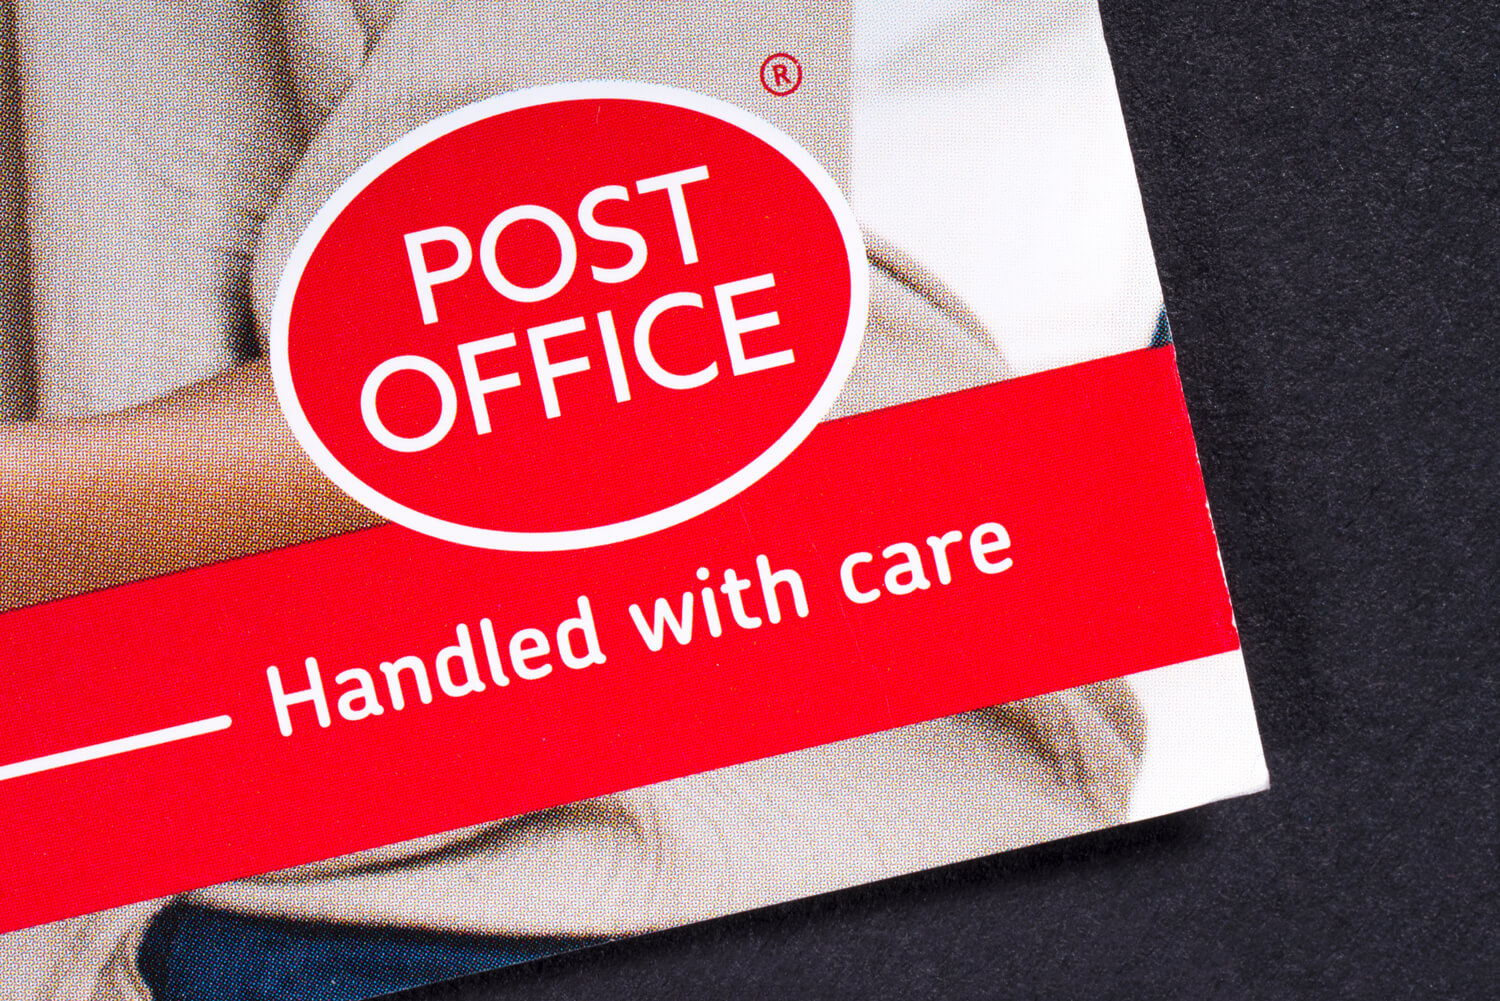 Post Office handled with care